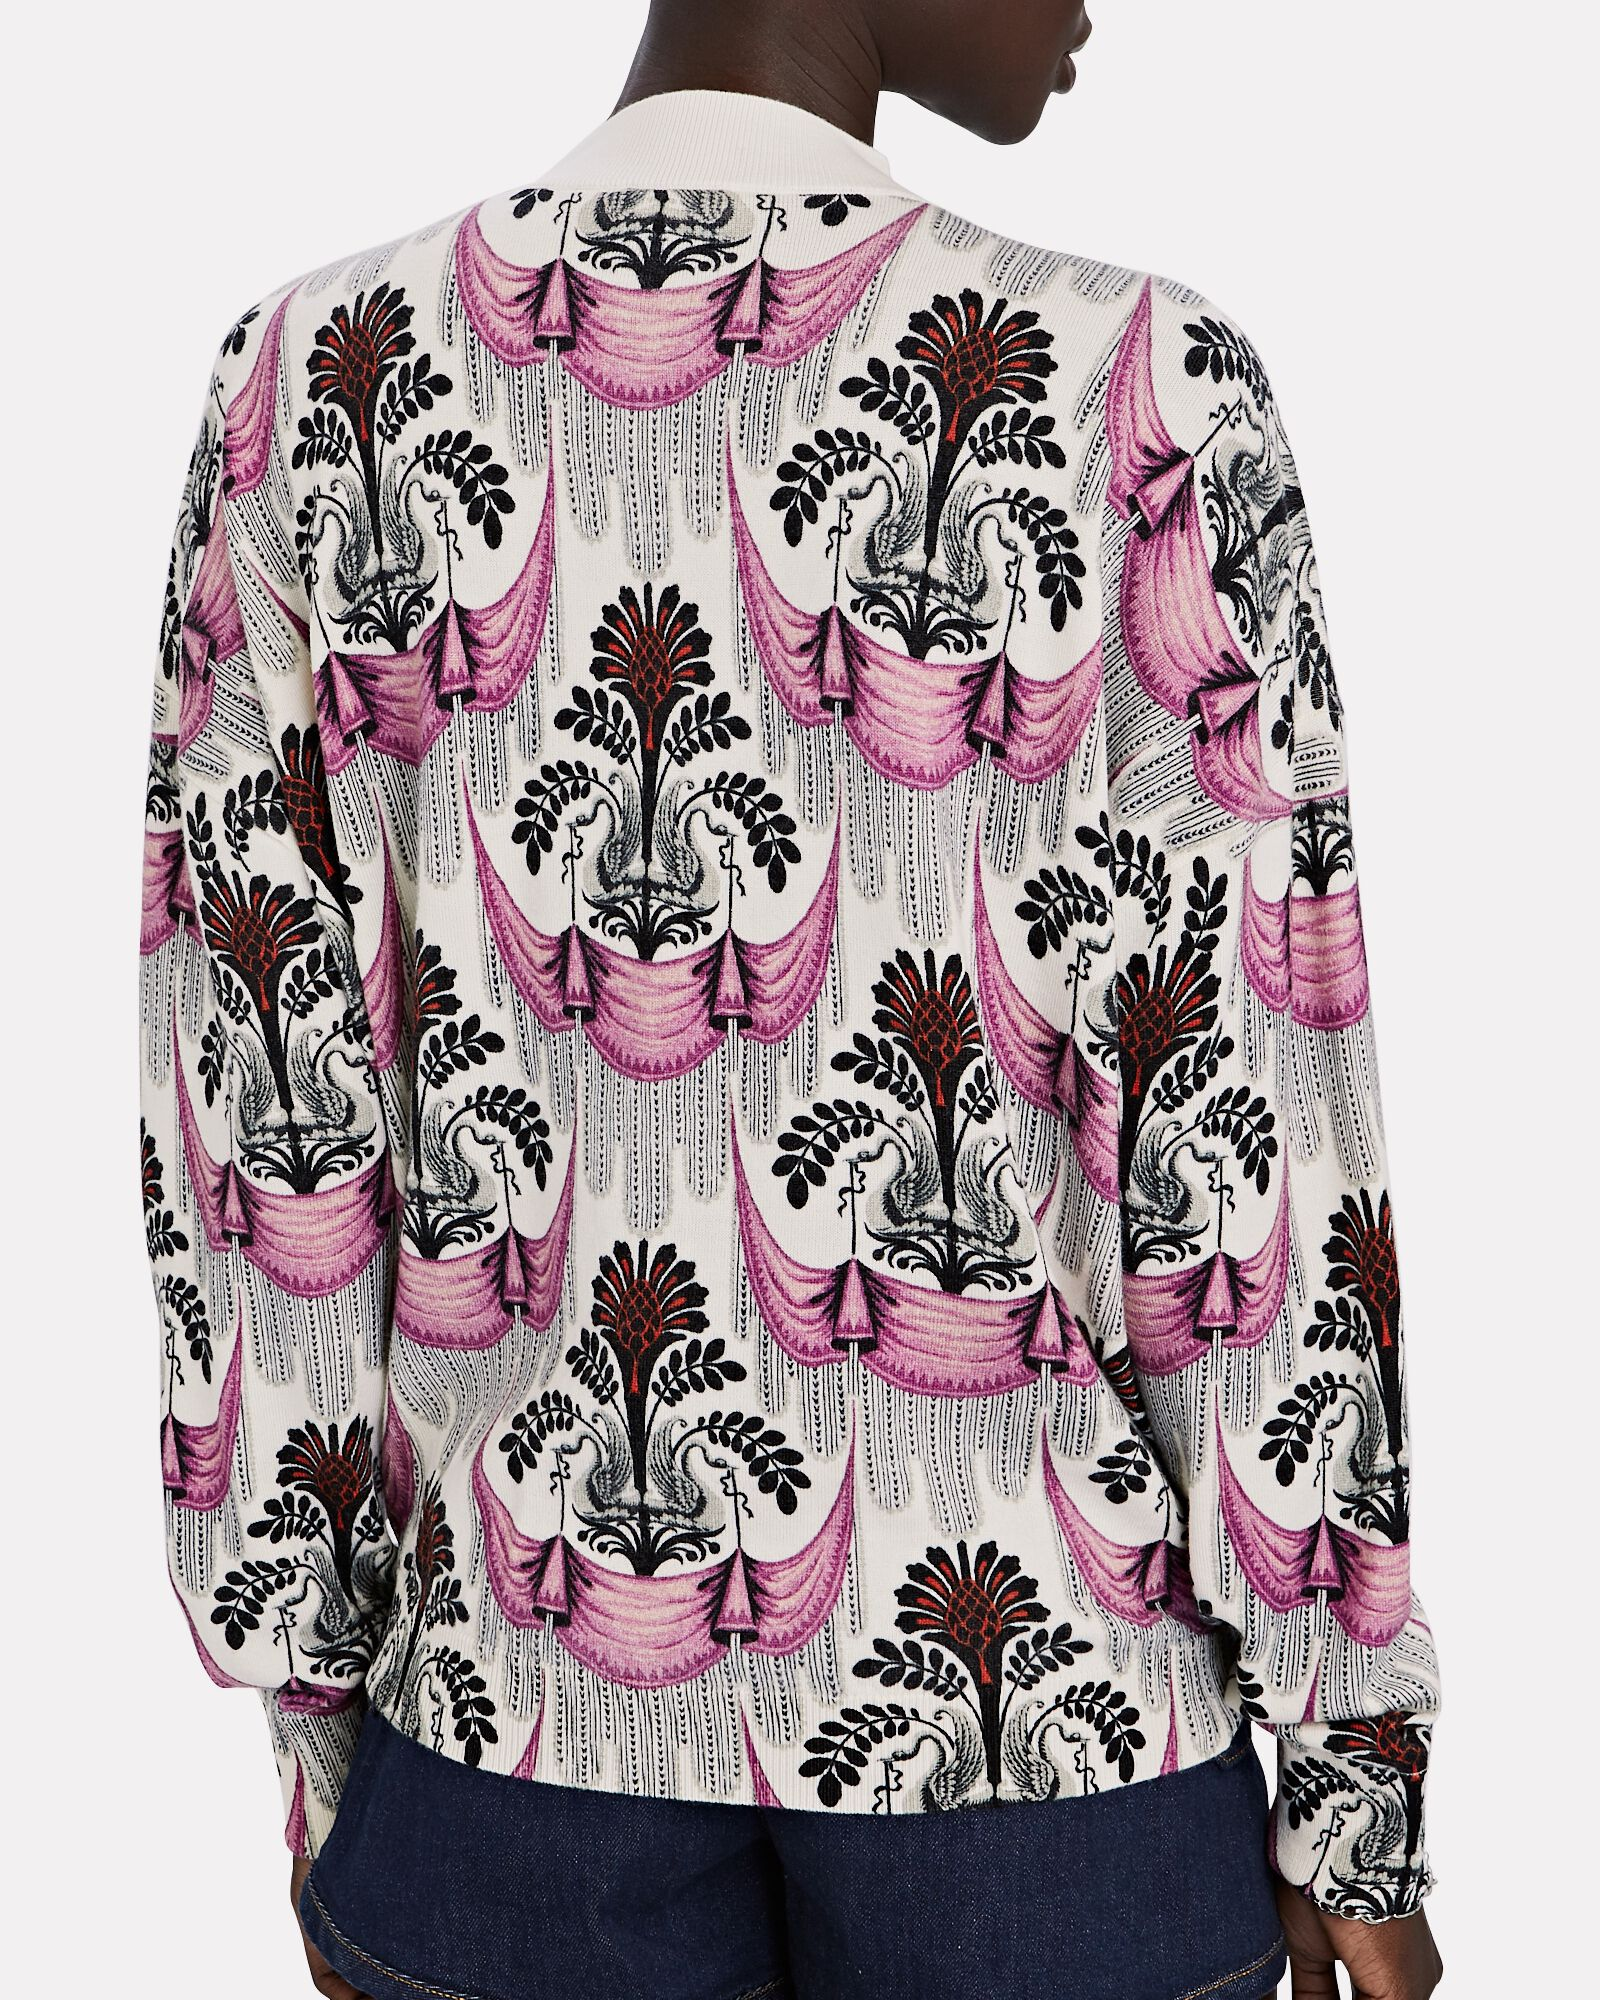 Printed Wool Sweater, WHITE/BLACK/PINK, hi-res